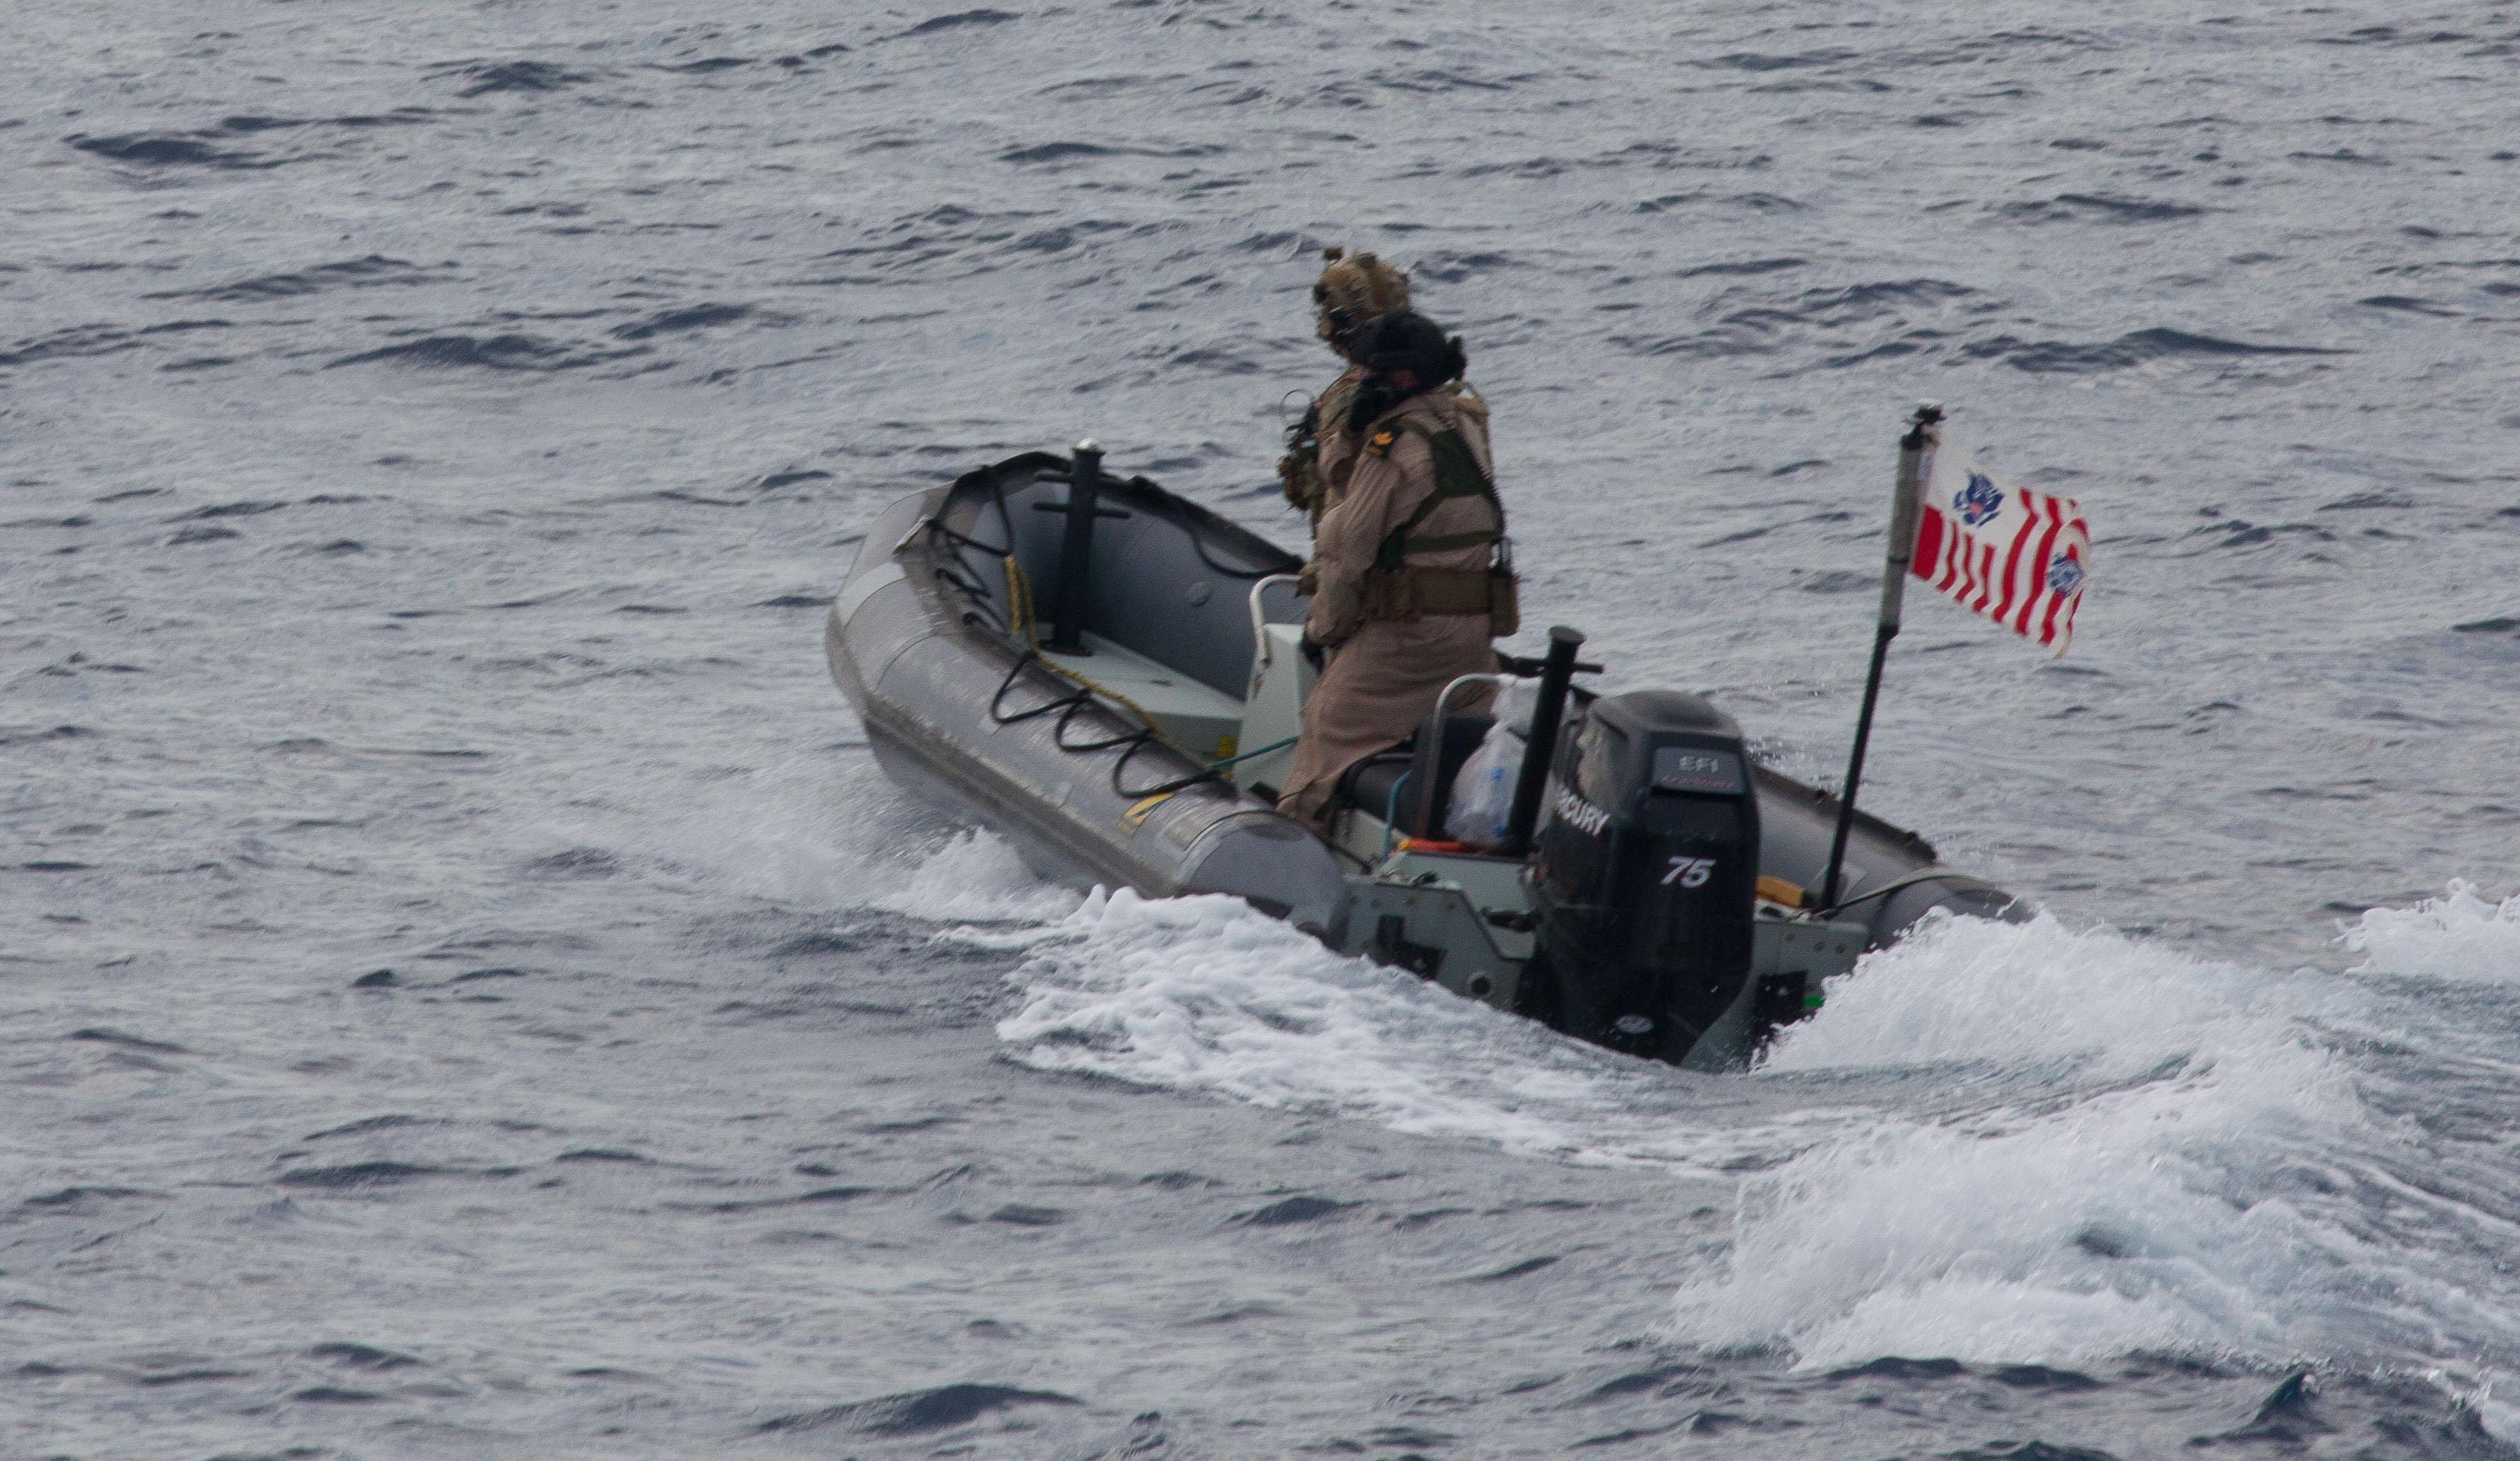 Members of the Royal Canadian Navy and the U.S. Coast Guard deploy a rigid-hulled inflatable boat from HMCS BRANDON upon sighting bales of illicit drugs in the Pacific Ocean during Operation CARIBBE on 5 November, 2016. Image By: Royal Canadian Navy Public Affairs